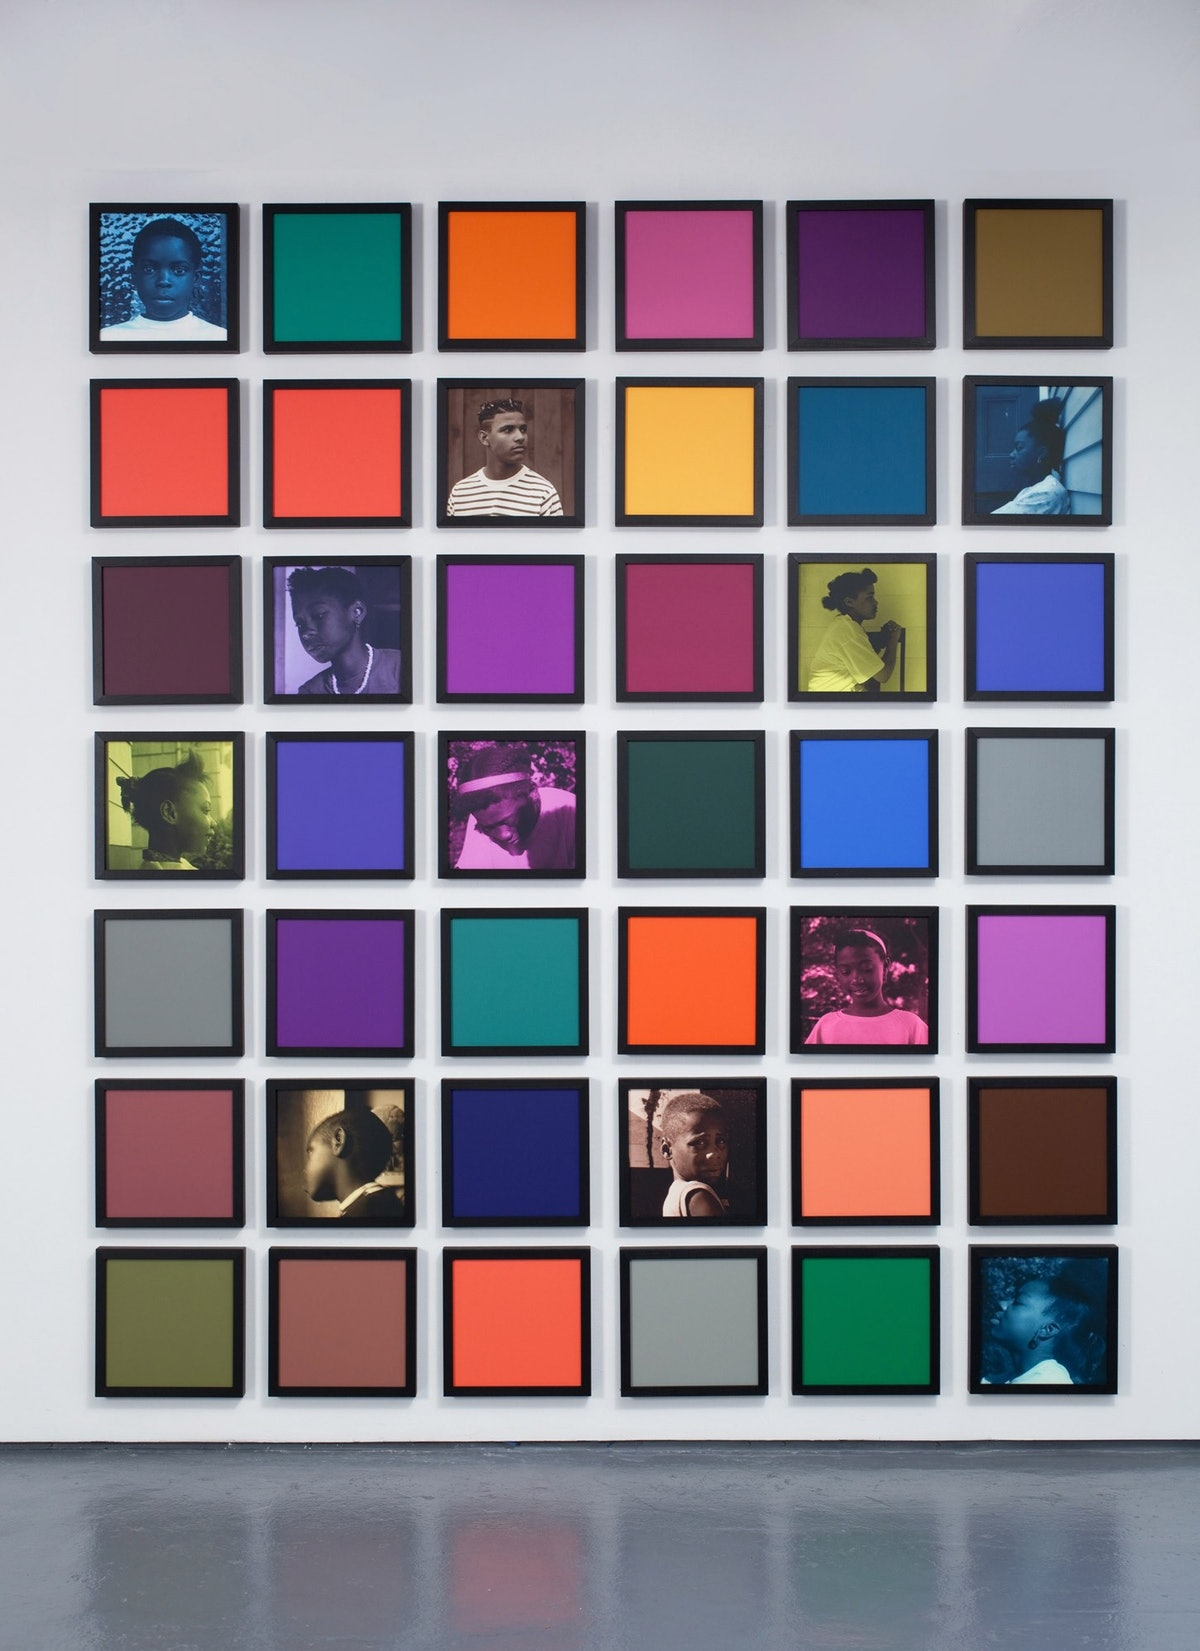 *Untitled* (*Colored People Grid*), 2009-10. Courtesy of the artist and Jack Shainman Gallery.